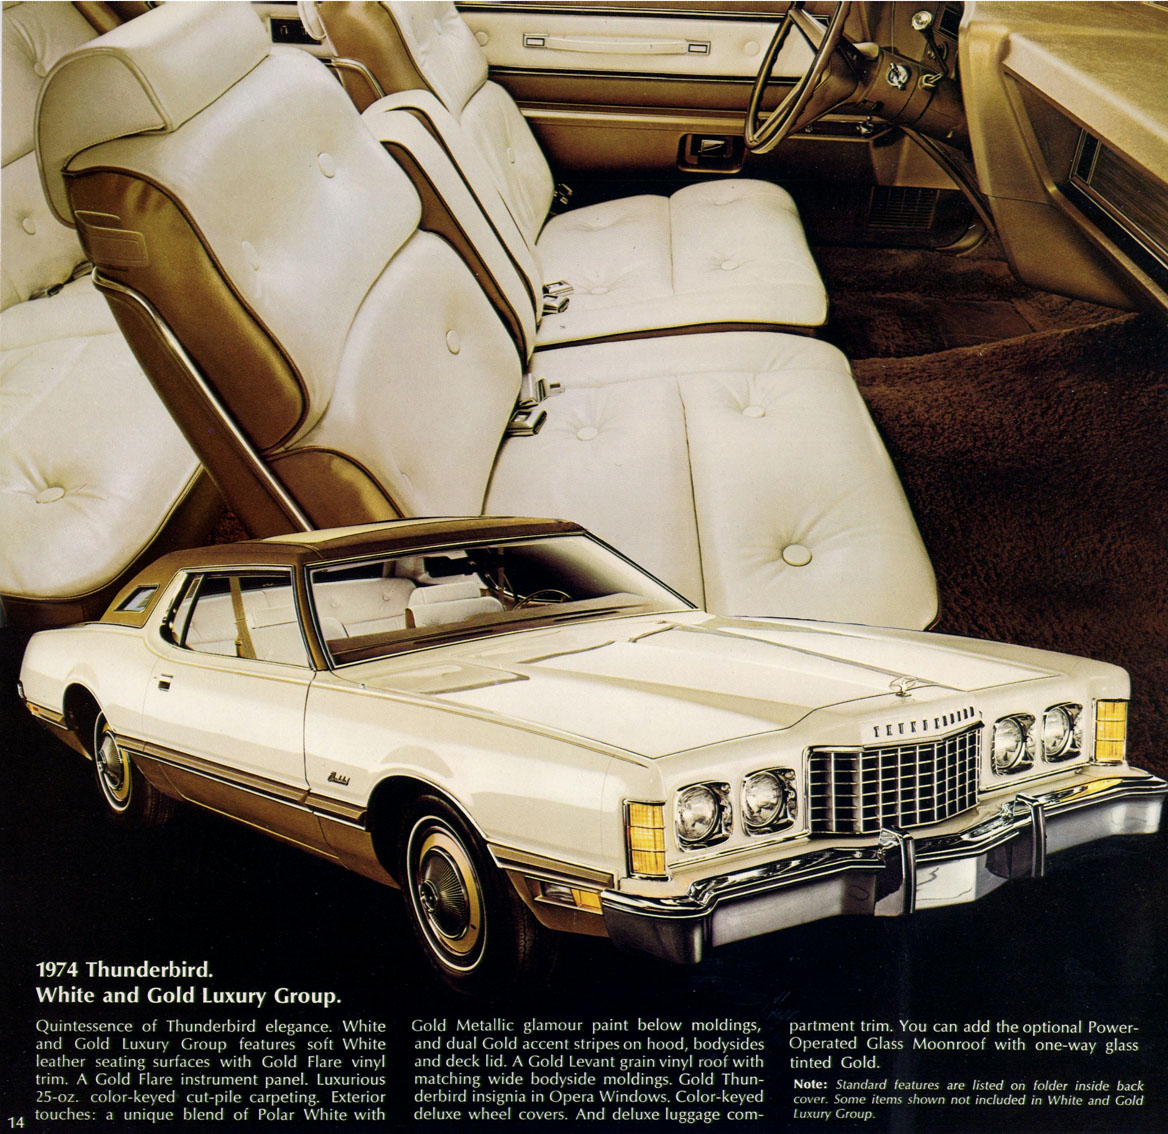 Curbside Classic 1975 Ford Thunderbird Cherries Are Available For